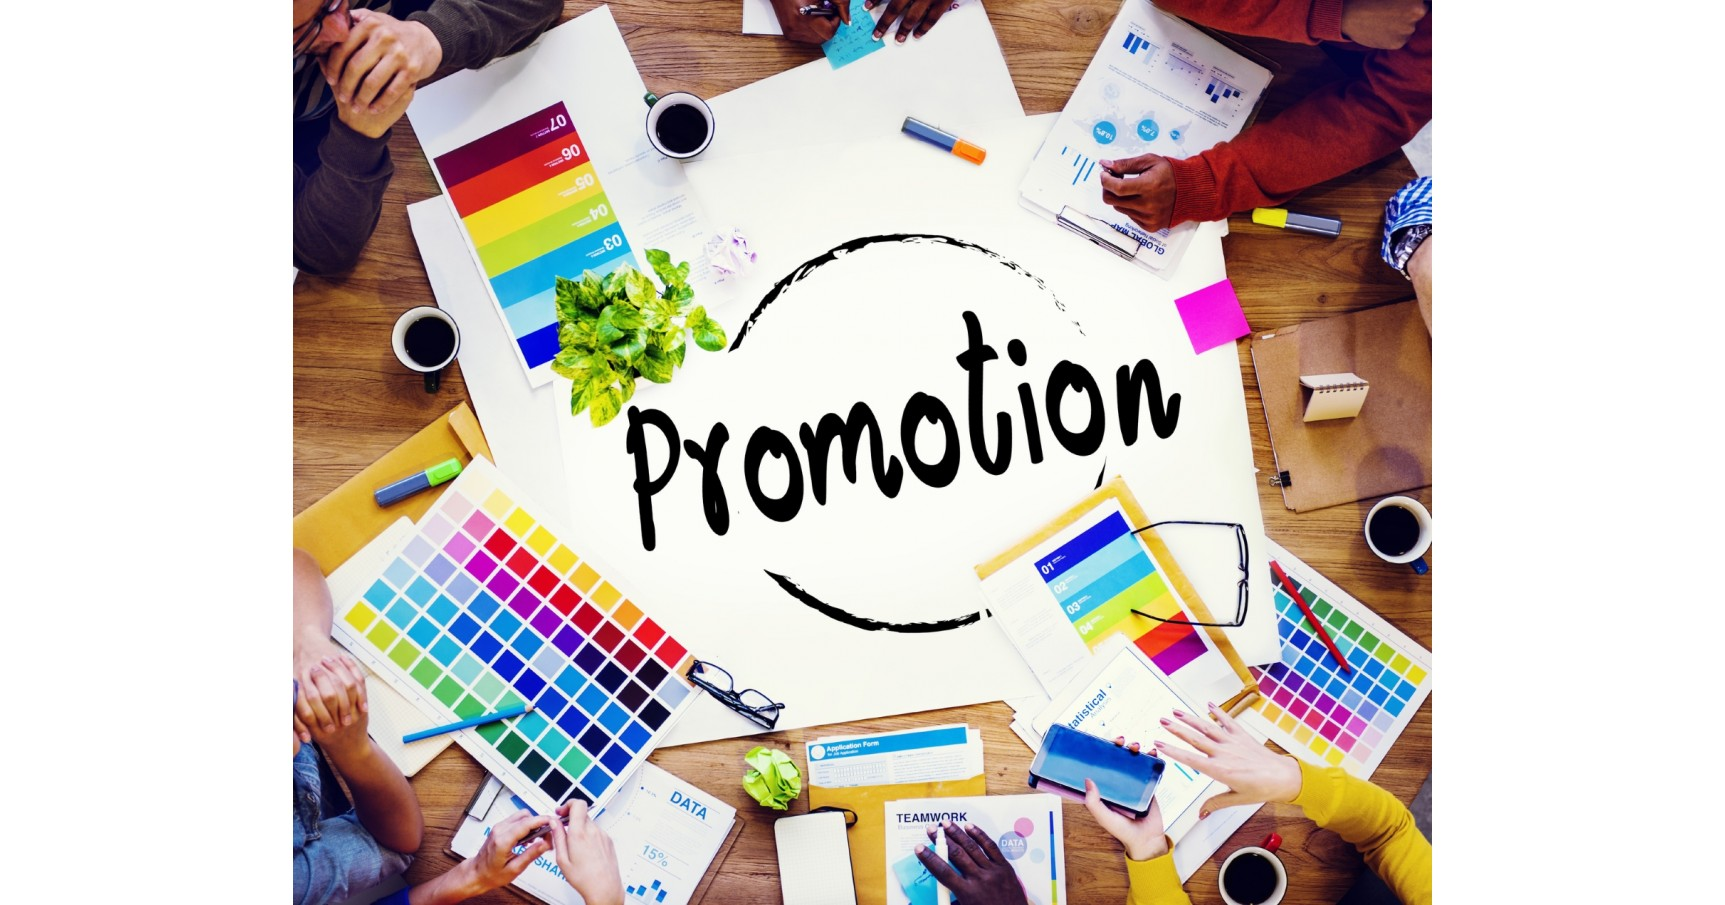 7 Ways to Market Your Business Using Promotional Items